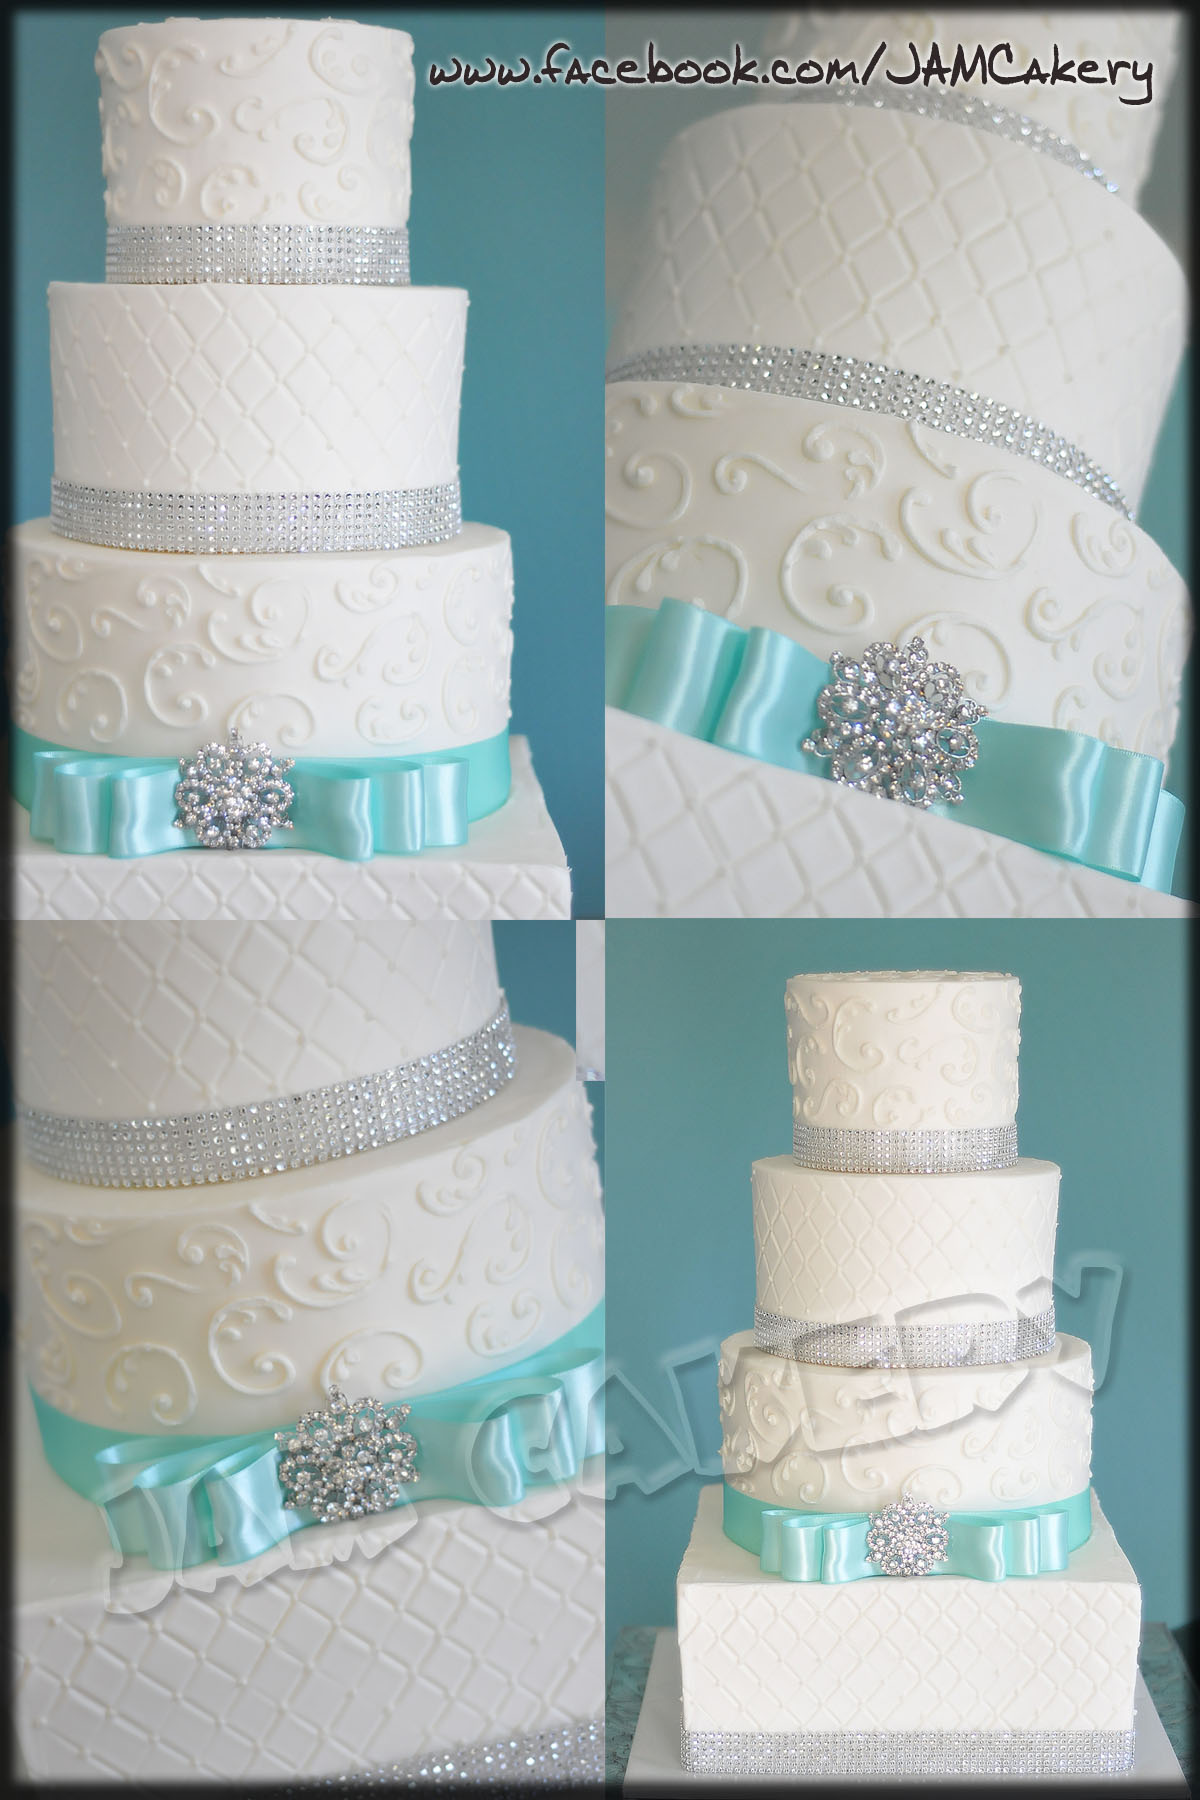 Turquoise and Sparkle J A M Cakery